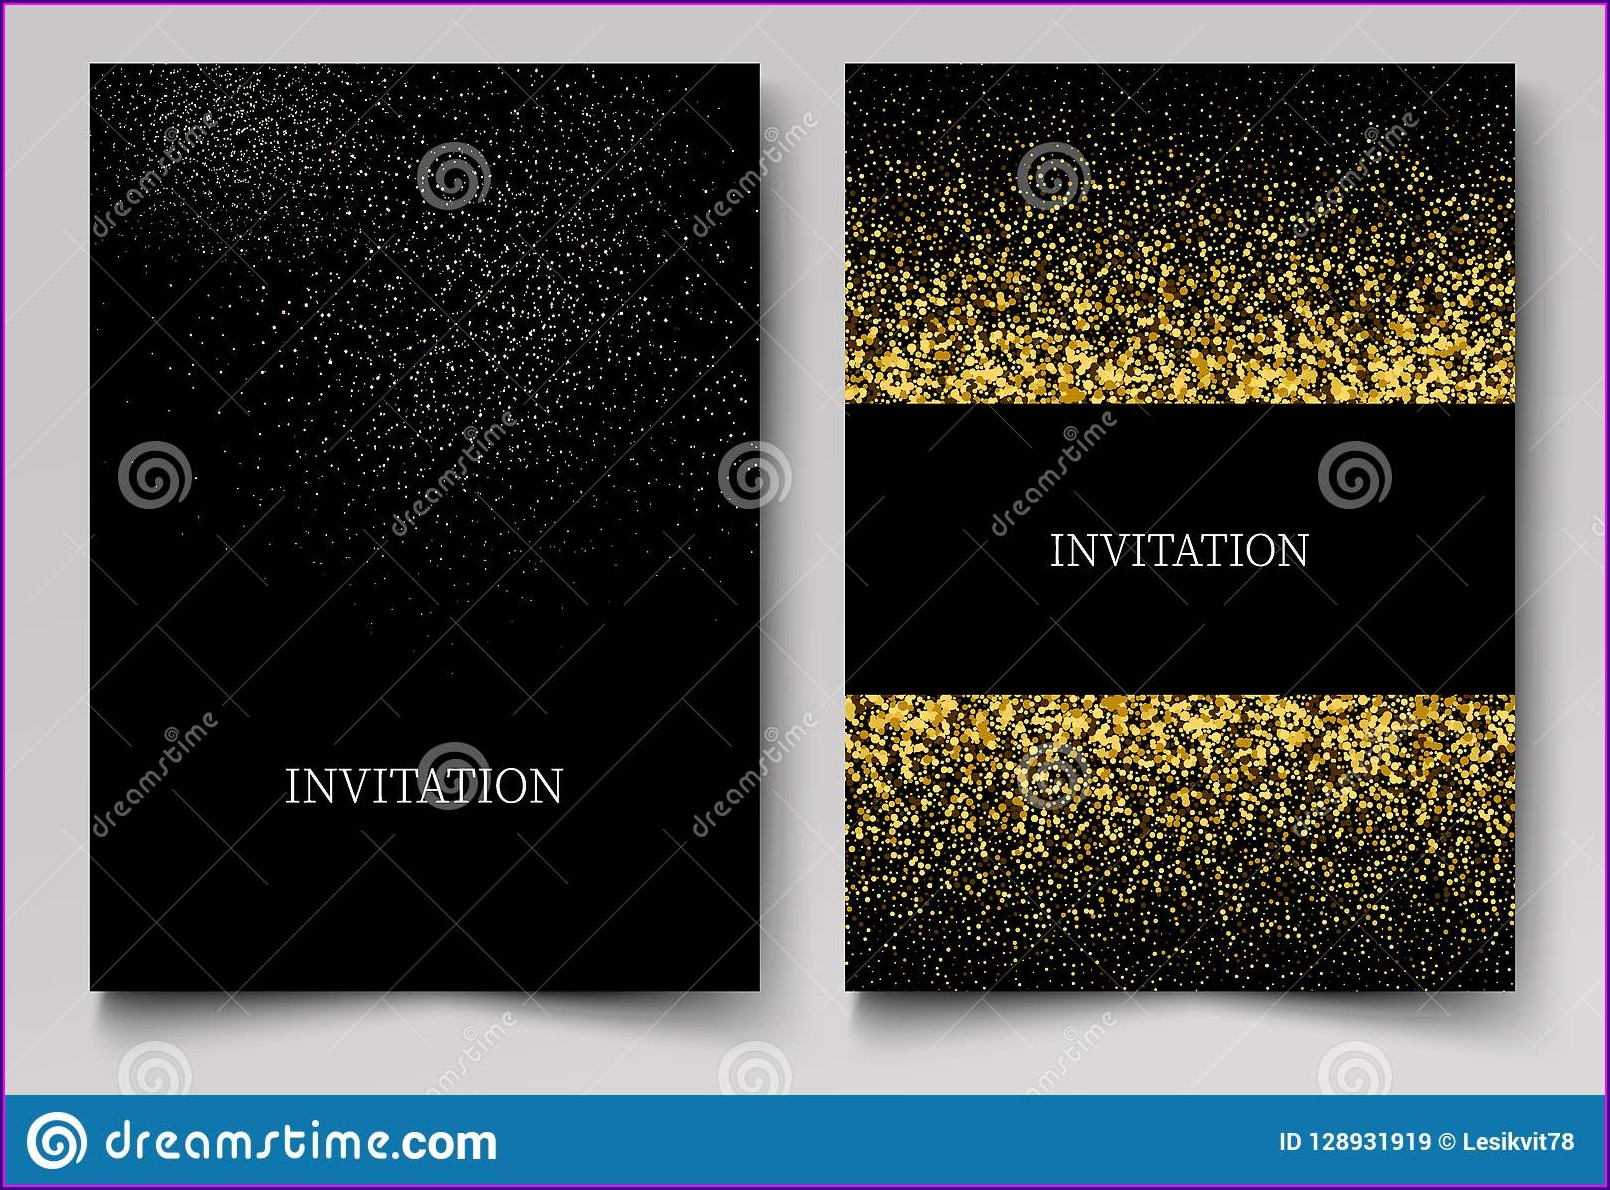 Gold Free Invitation Background Designs